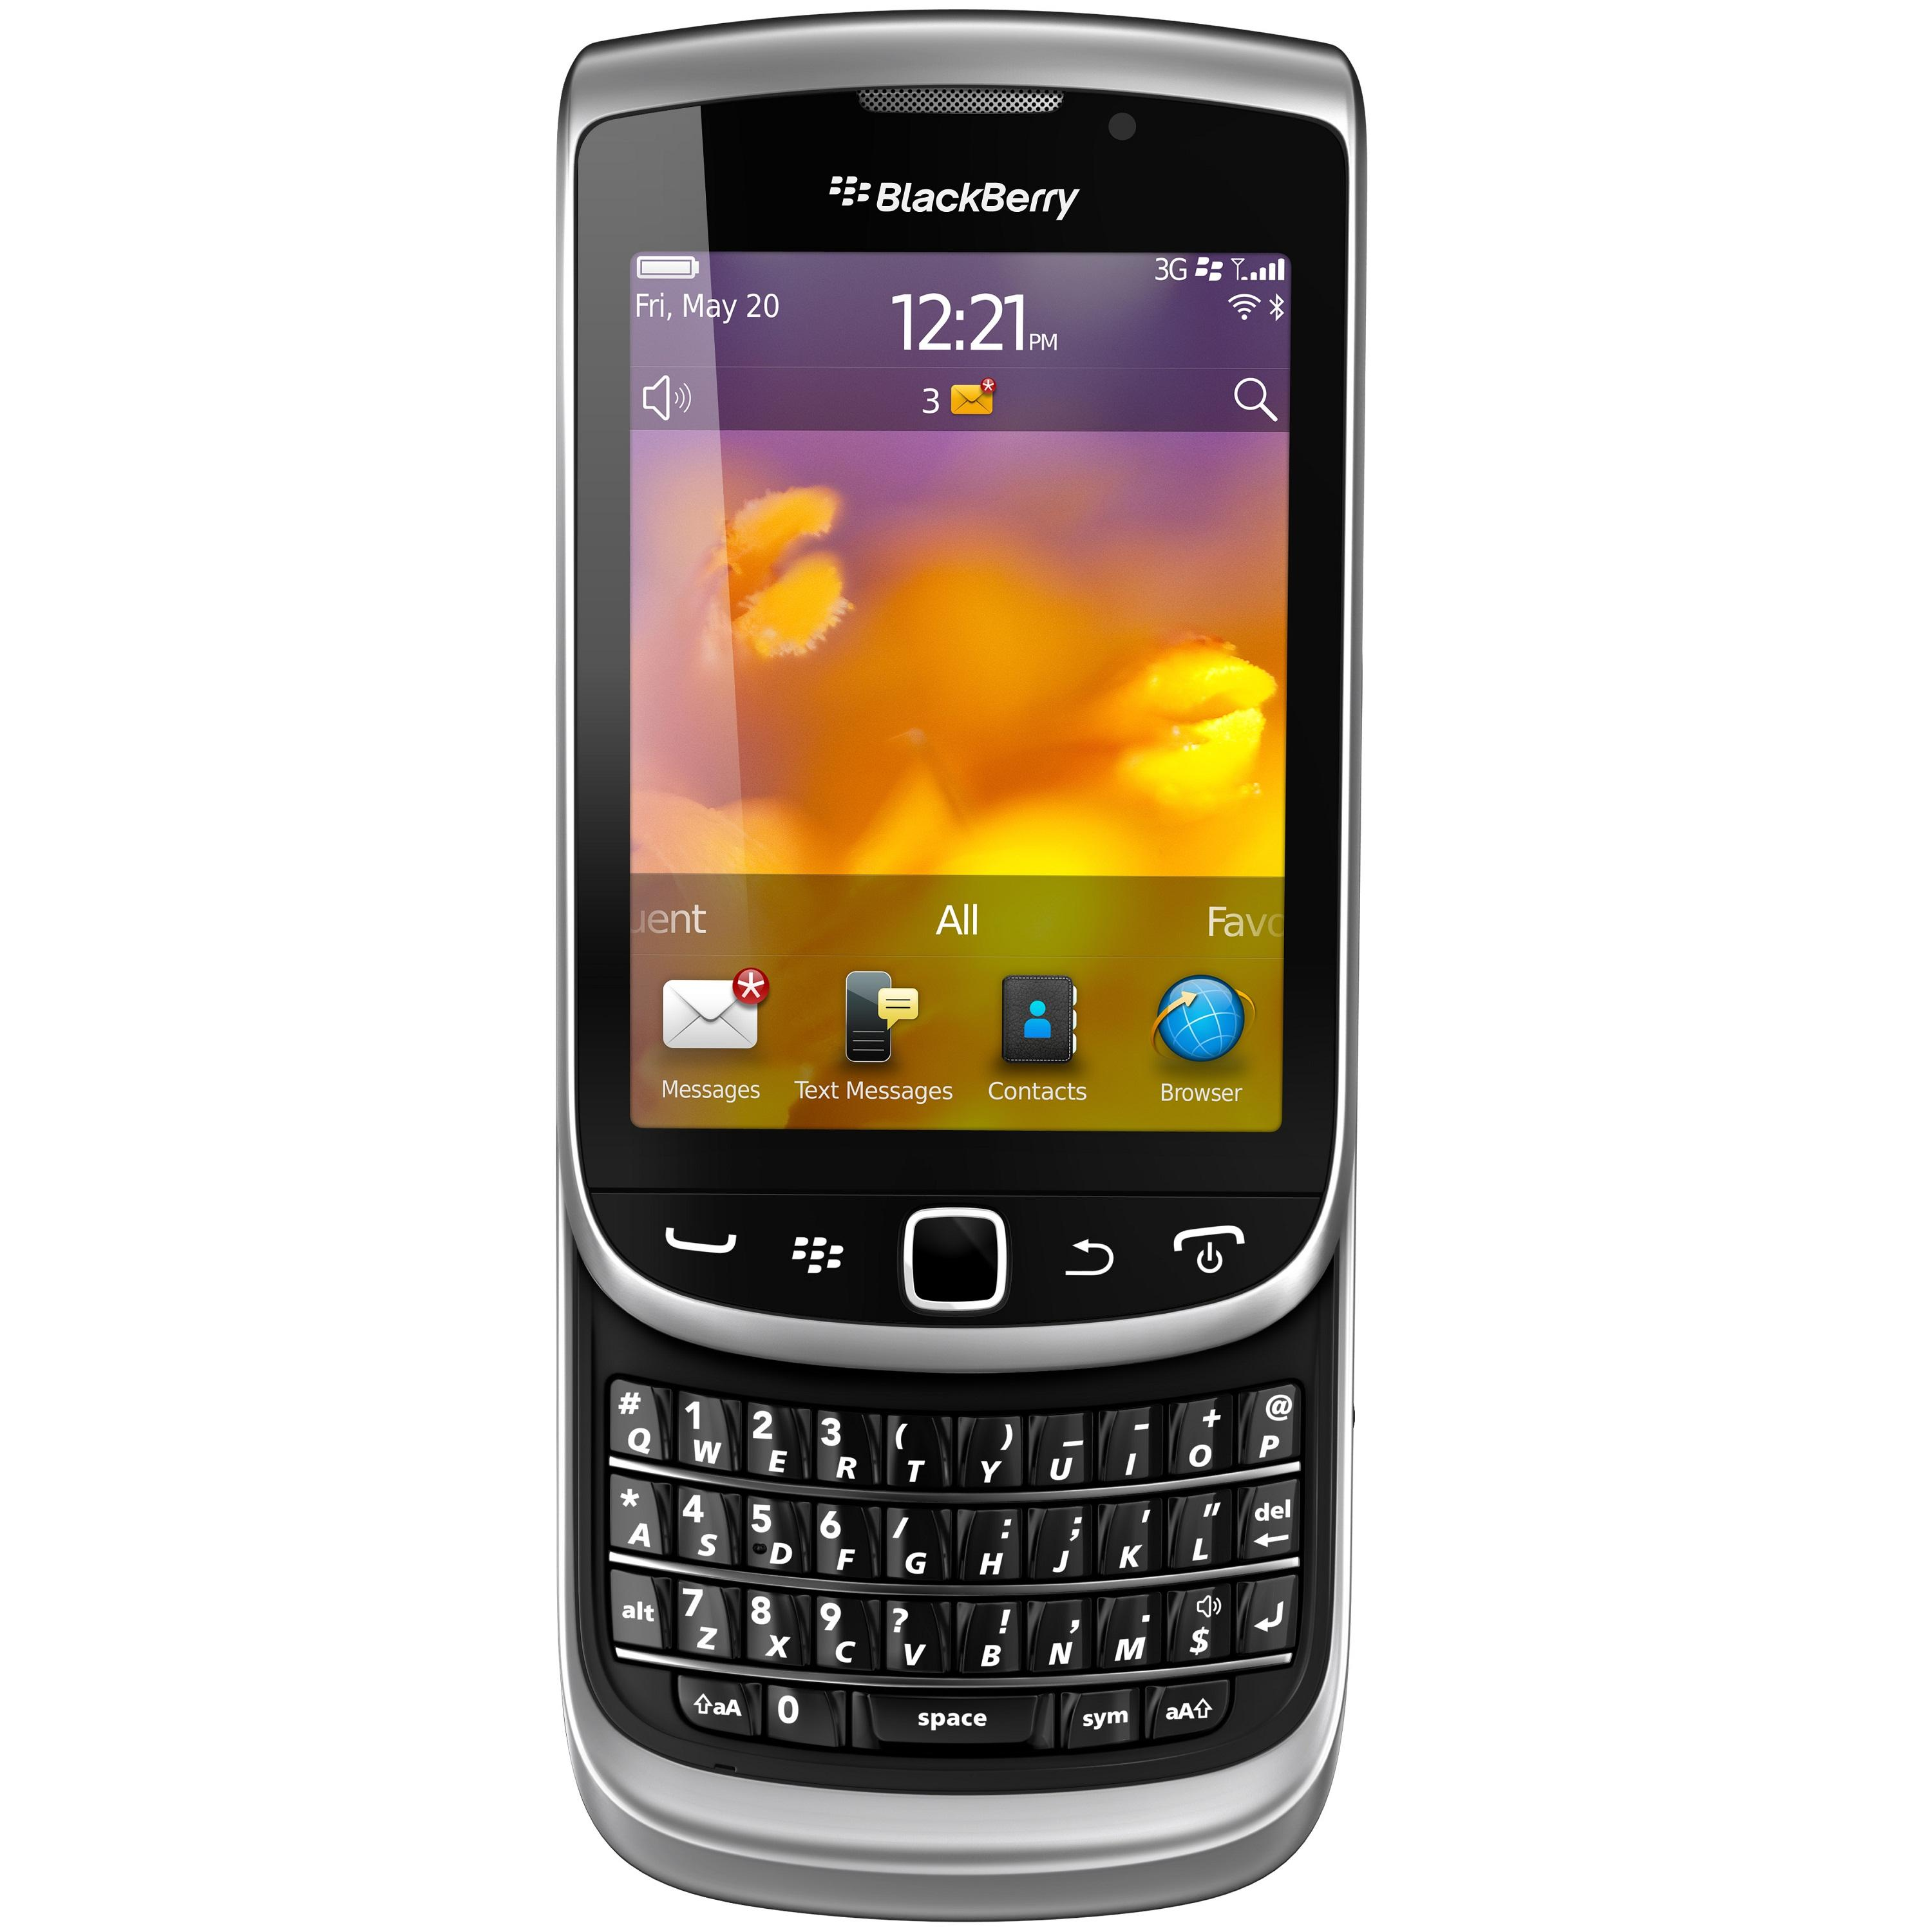 Blackberry Torch 9810 Unlocked GSM HSPA+ OS 7.0 Slider Phone - Zinc Grey - Thumbnail 0